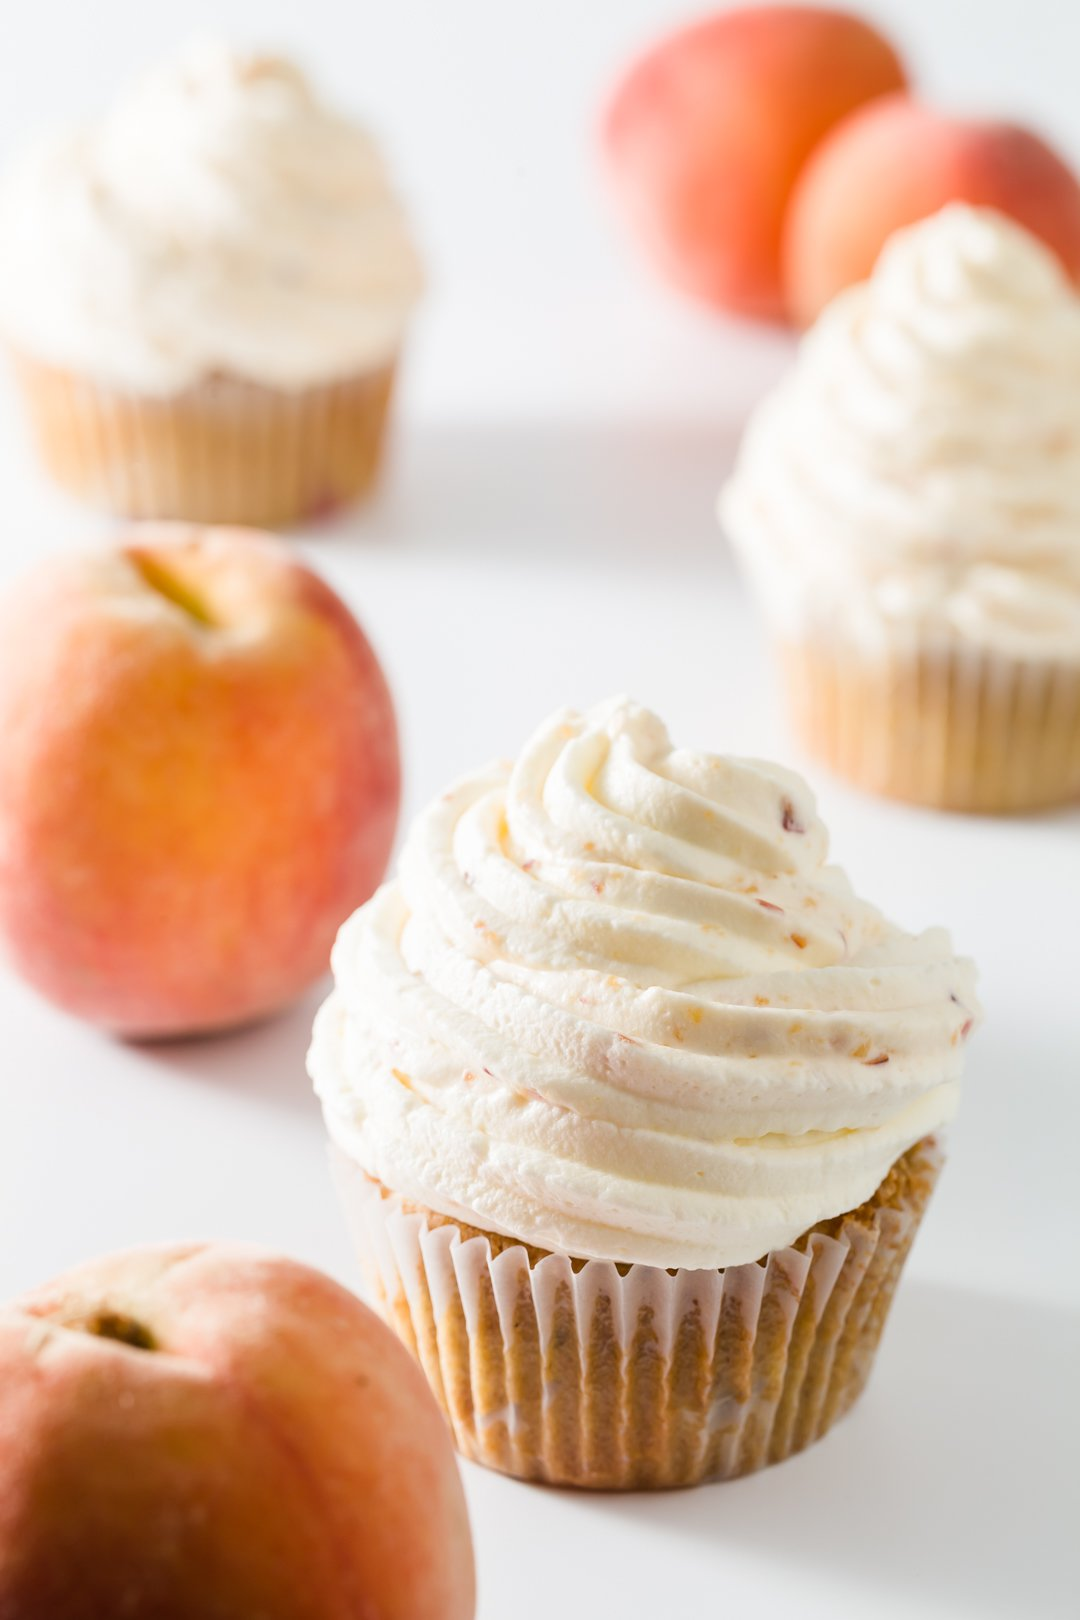 Peach Whipped Cream